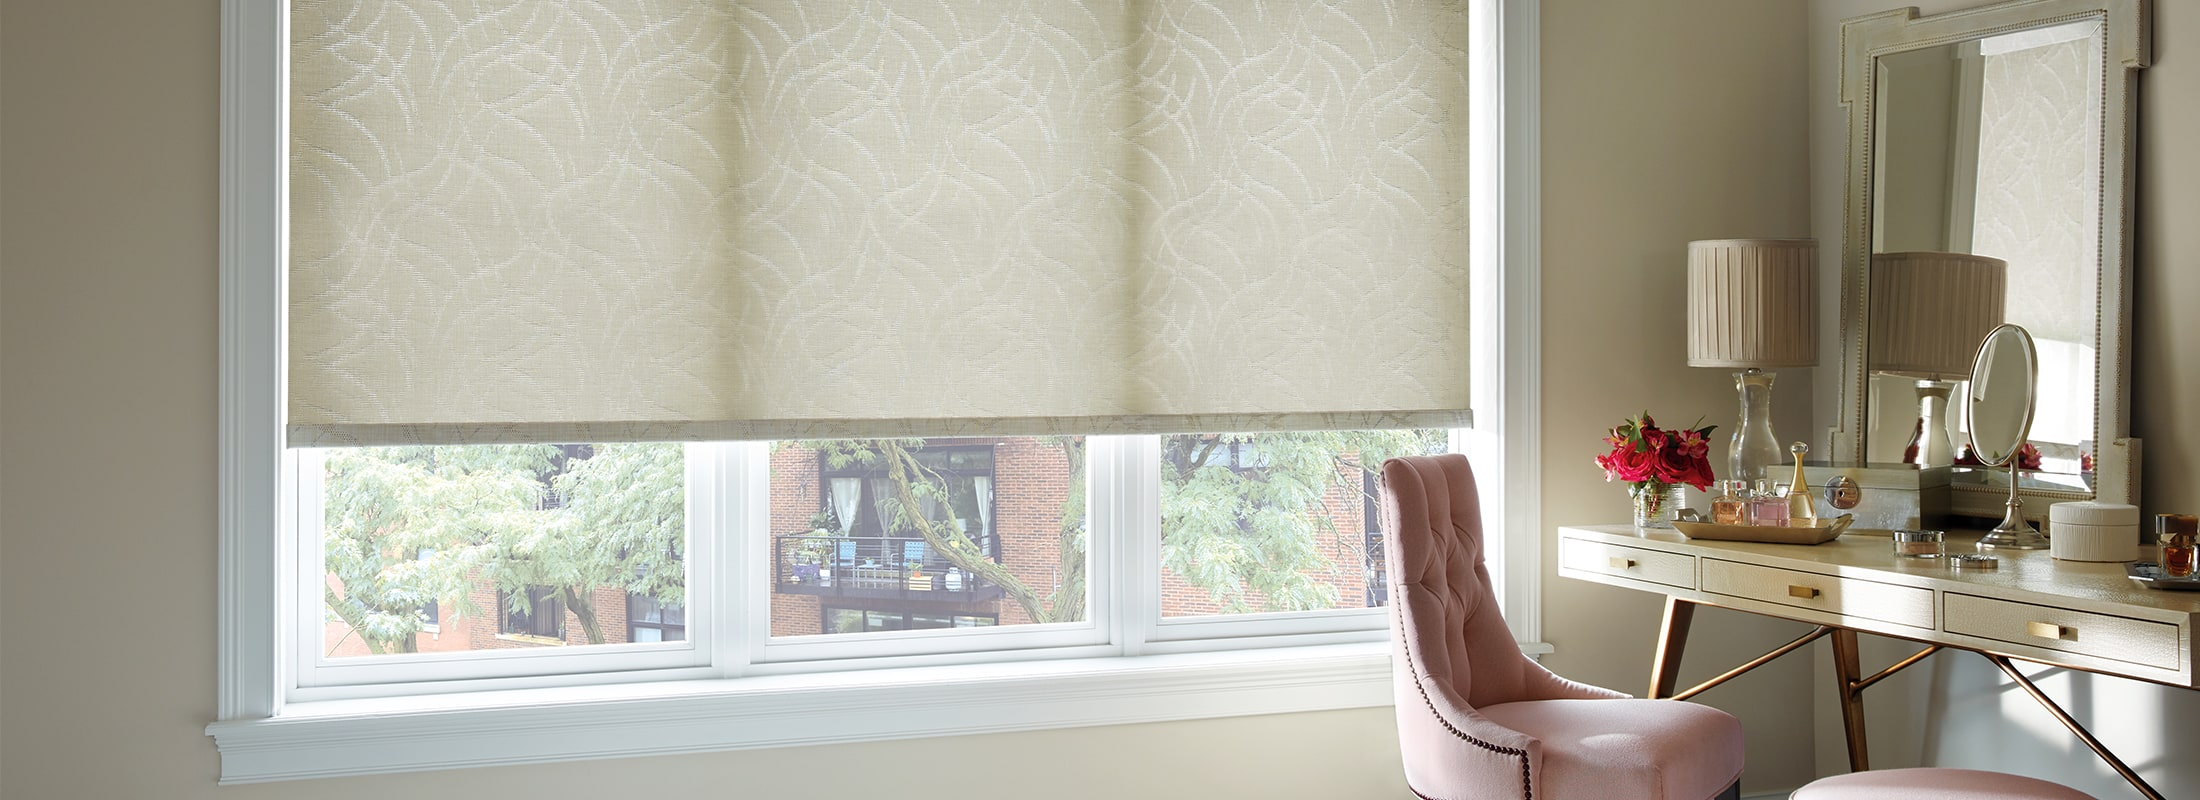 final shade hunterdouglas blinds style window coverings douglass roman touch vignettes products hunter